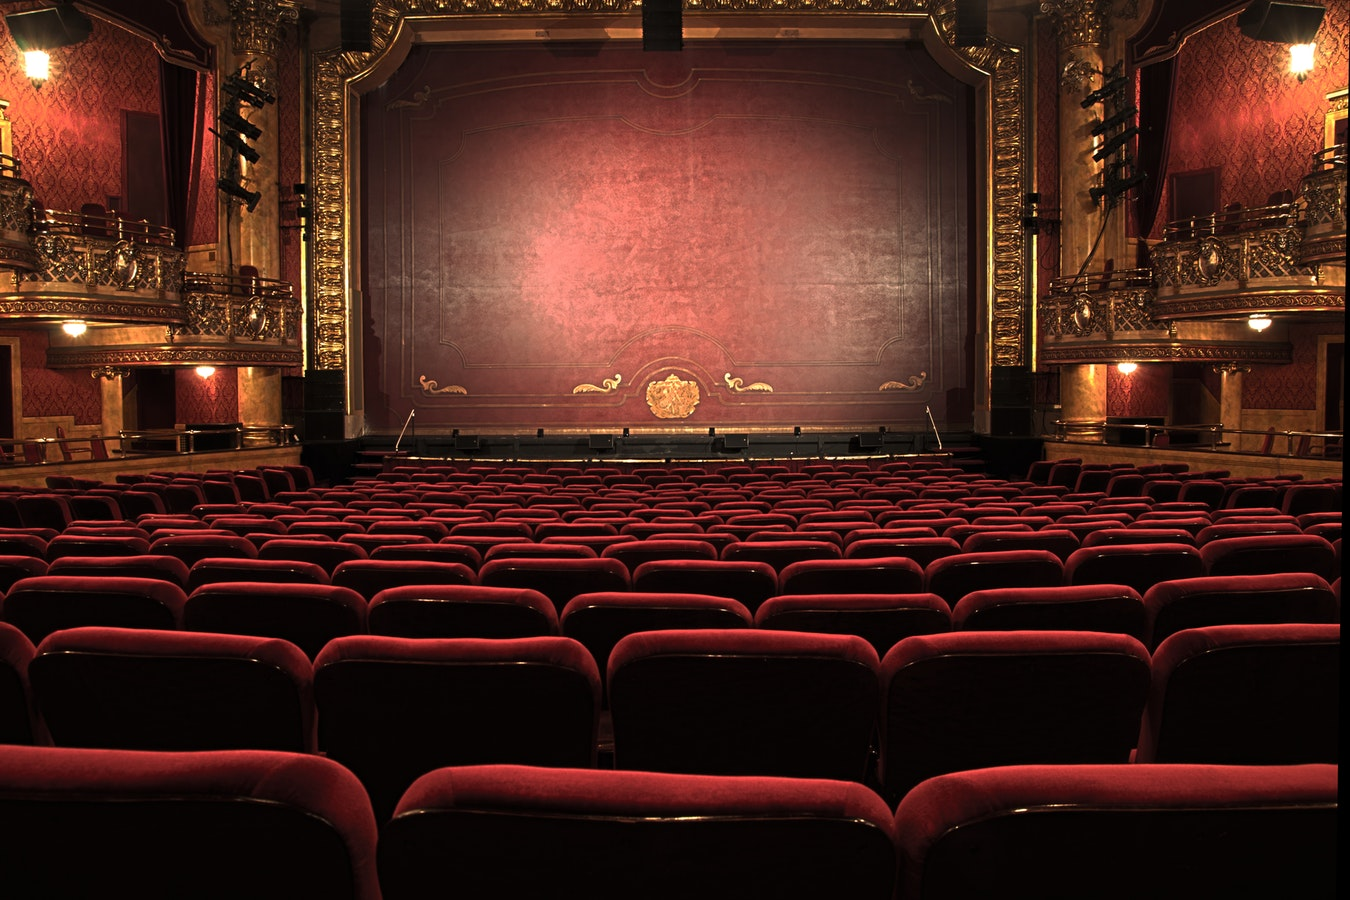 An open theater. Theater is a great way to help assist with healthy aging.